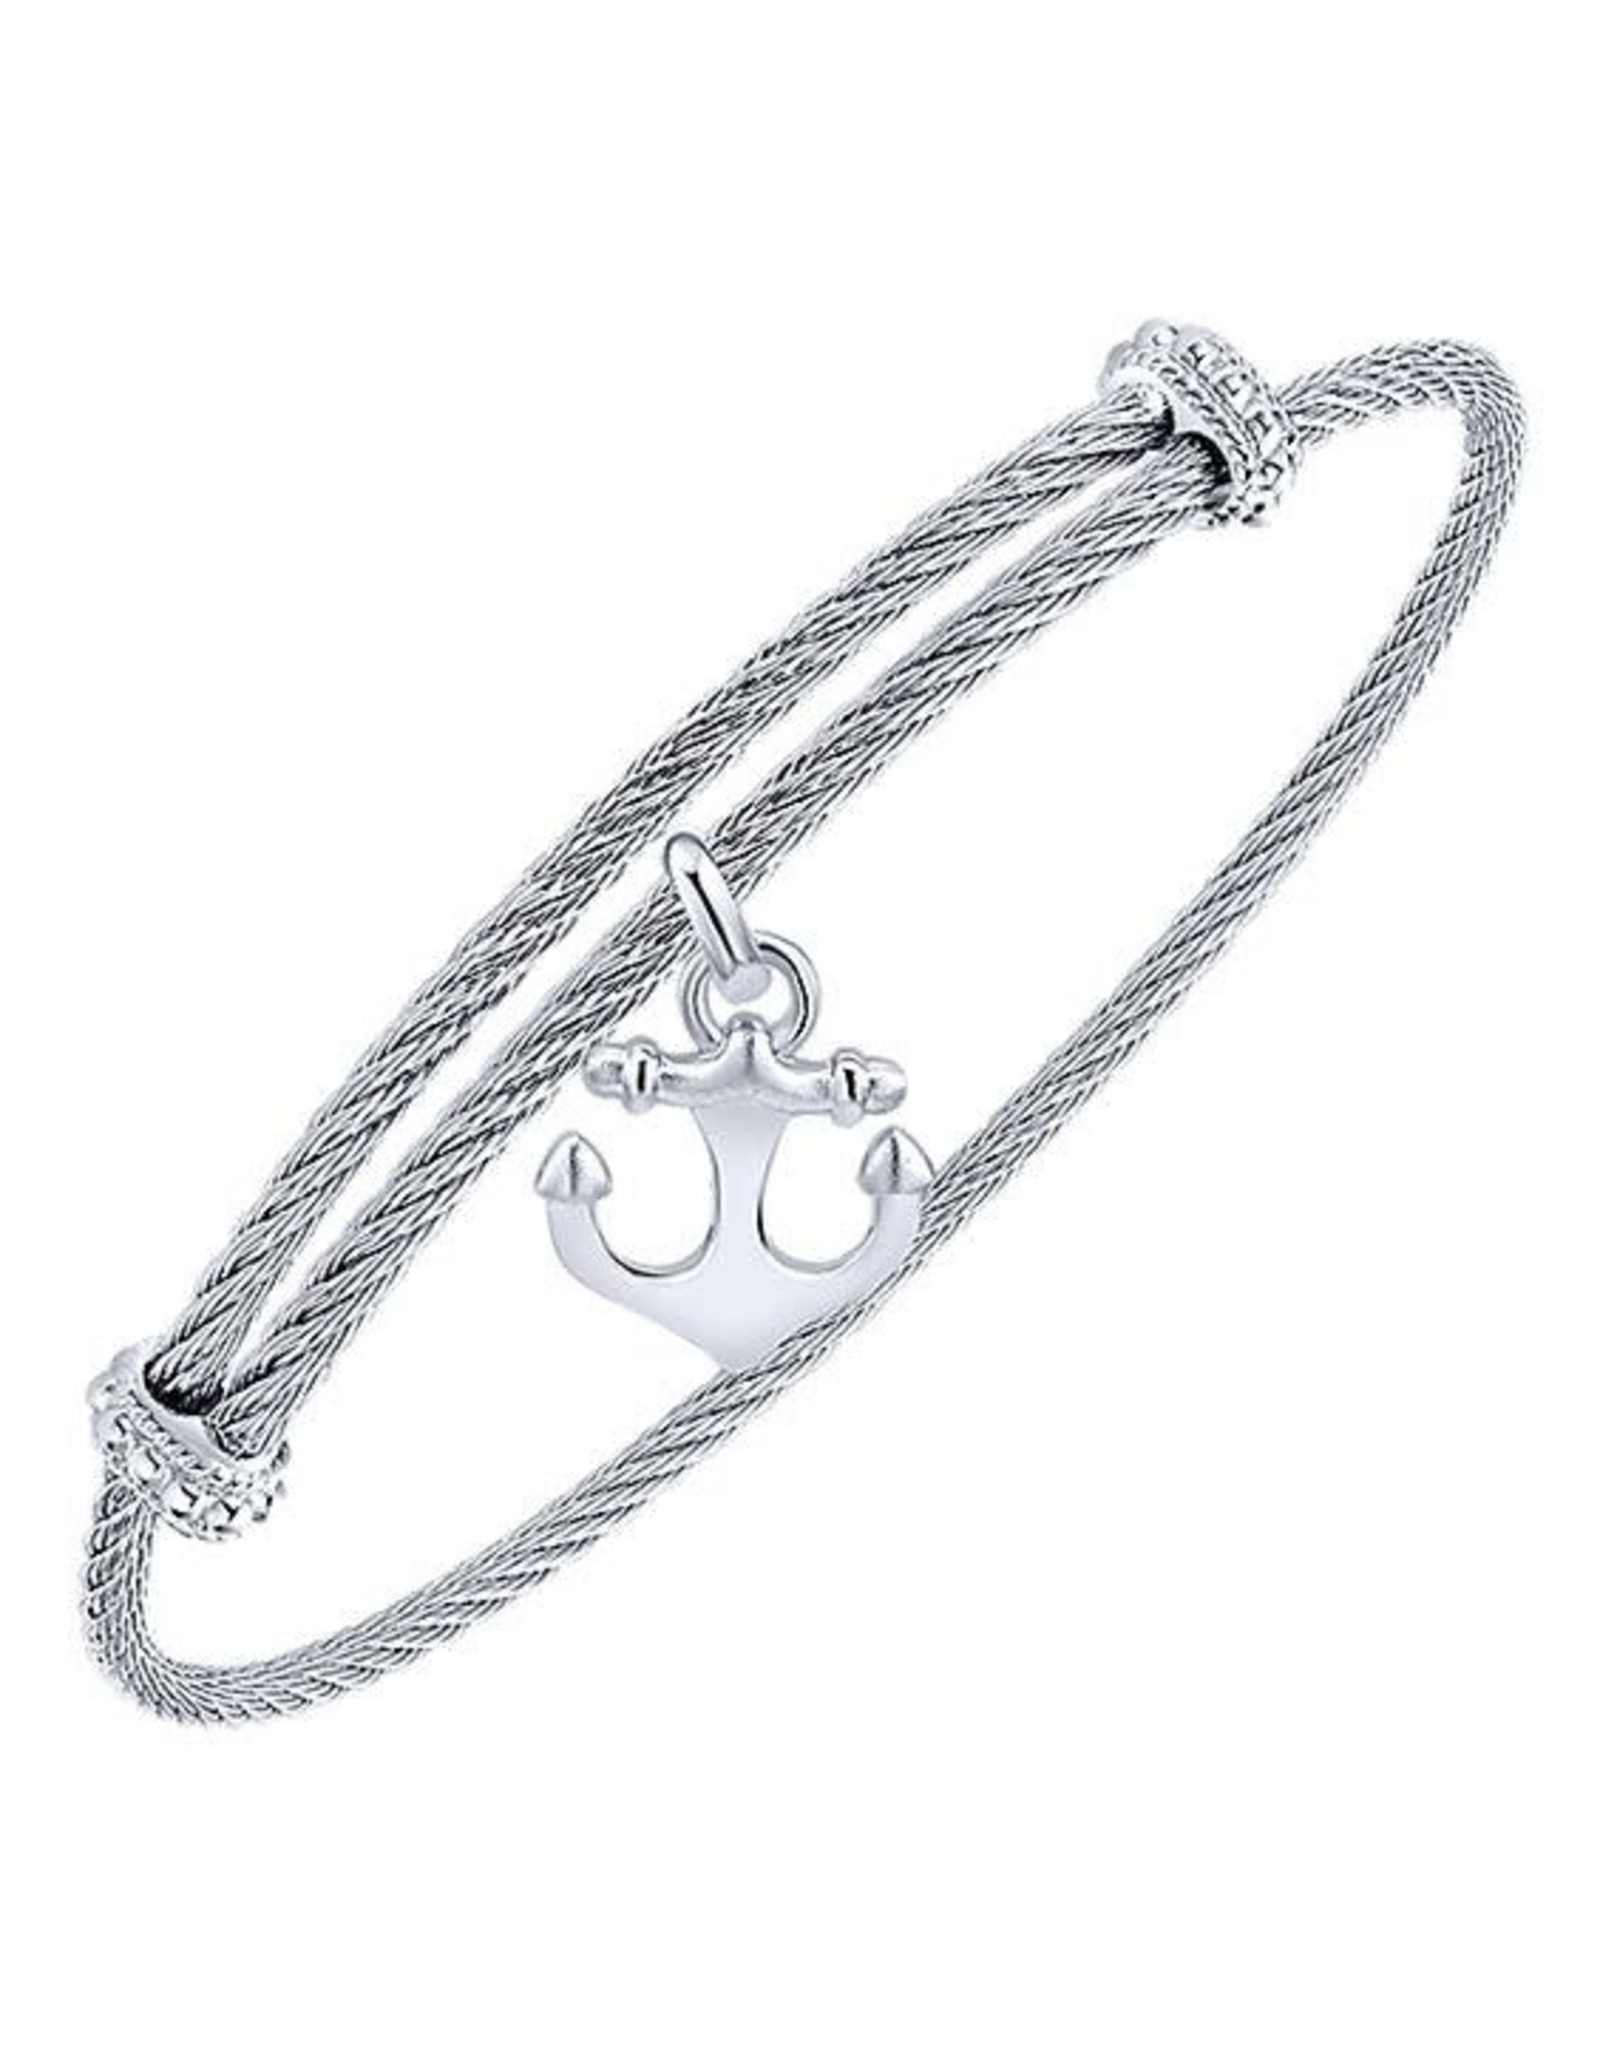 Adjustable Twisted Cable Stainless Steel Bangle with Sterling Silver Anchor Charm